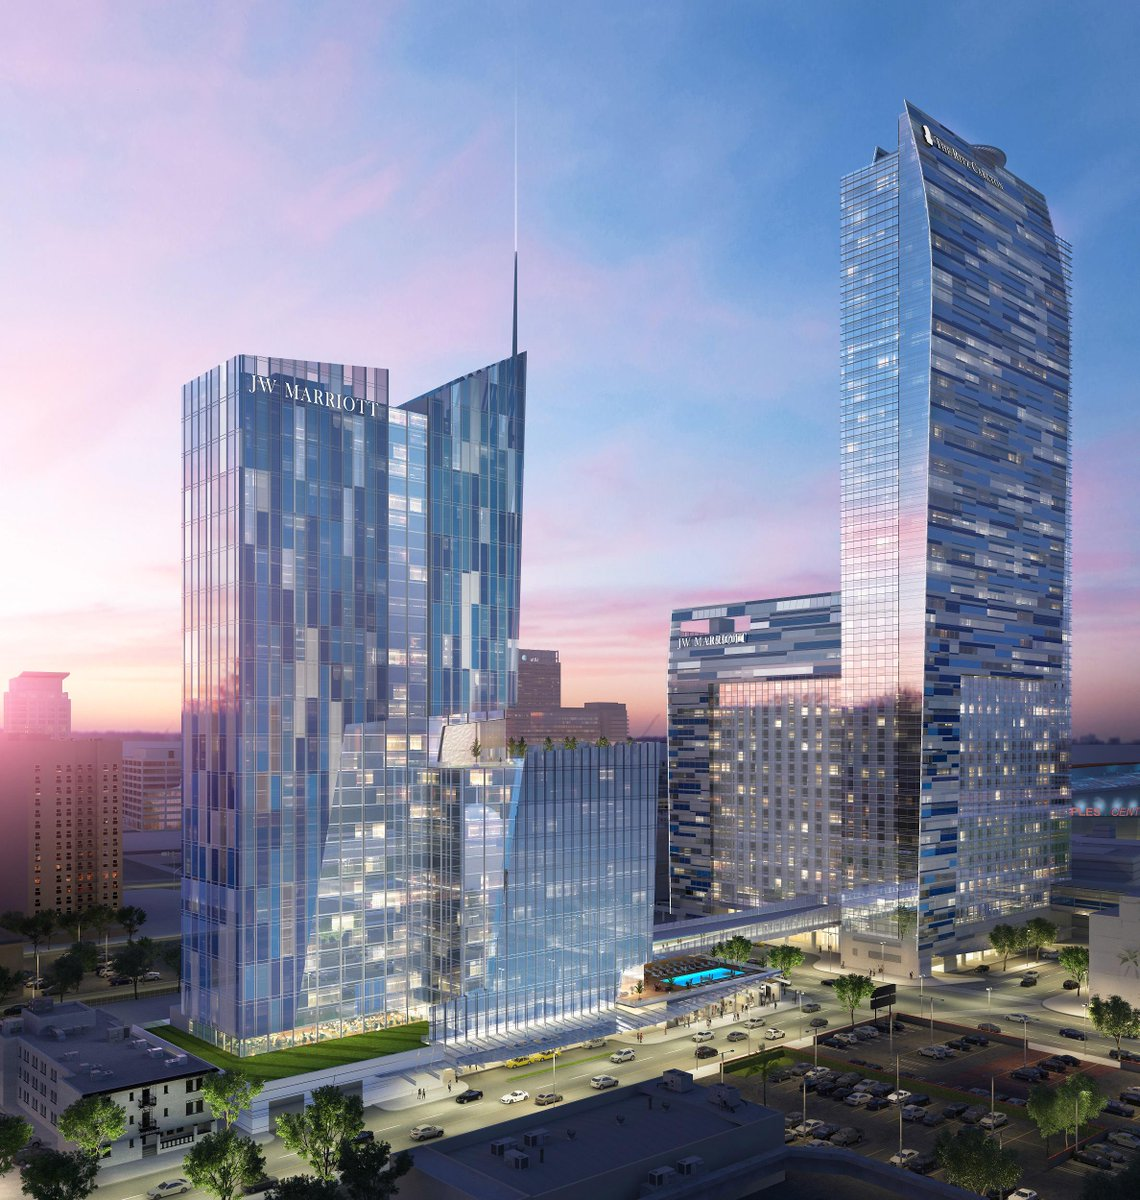 AEG to Develop New 755-Room Hotel in Downtown Los Angeles at @JWLALIVE http://t.co/y6MFvDbu5M http://t.co/MiJSygSfKb